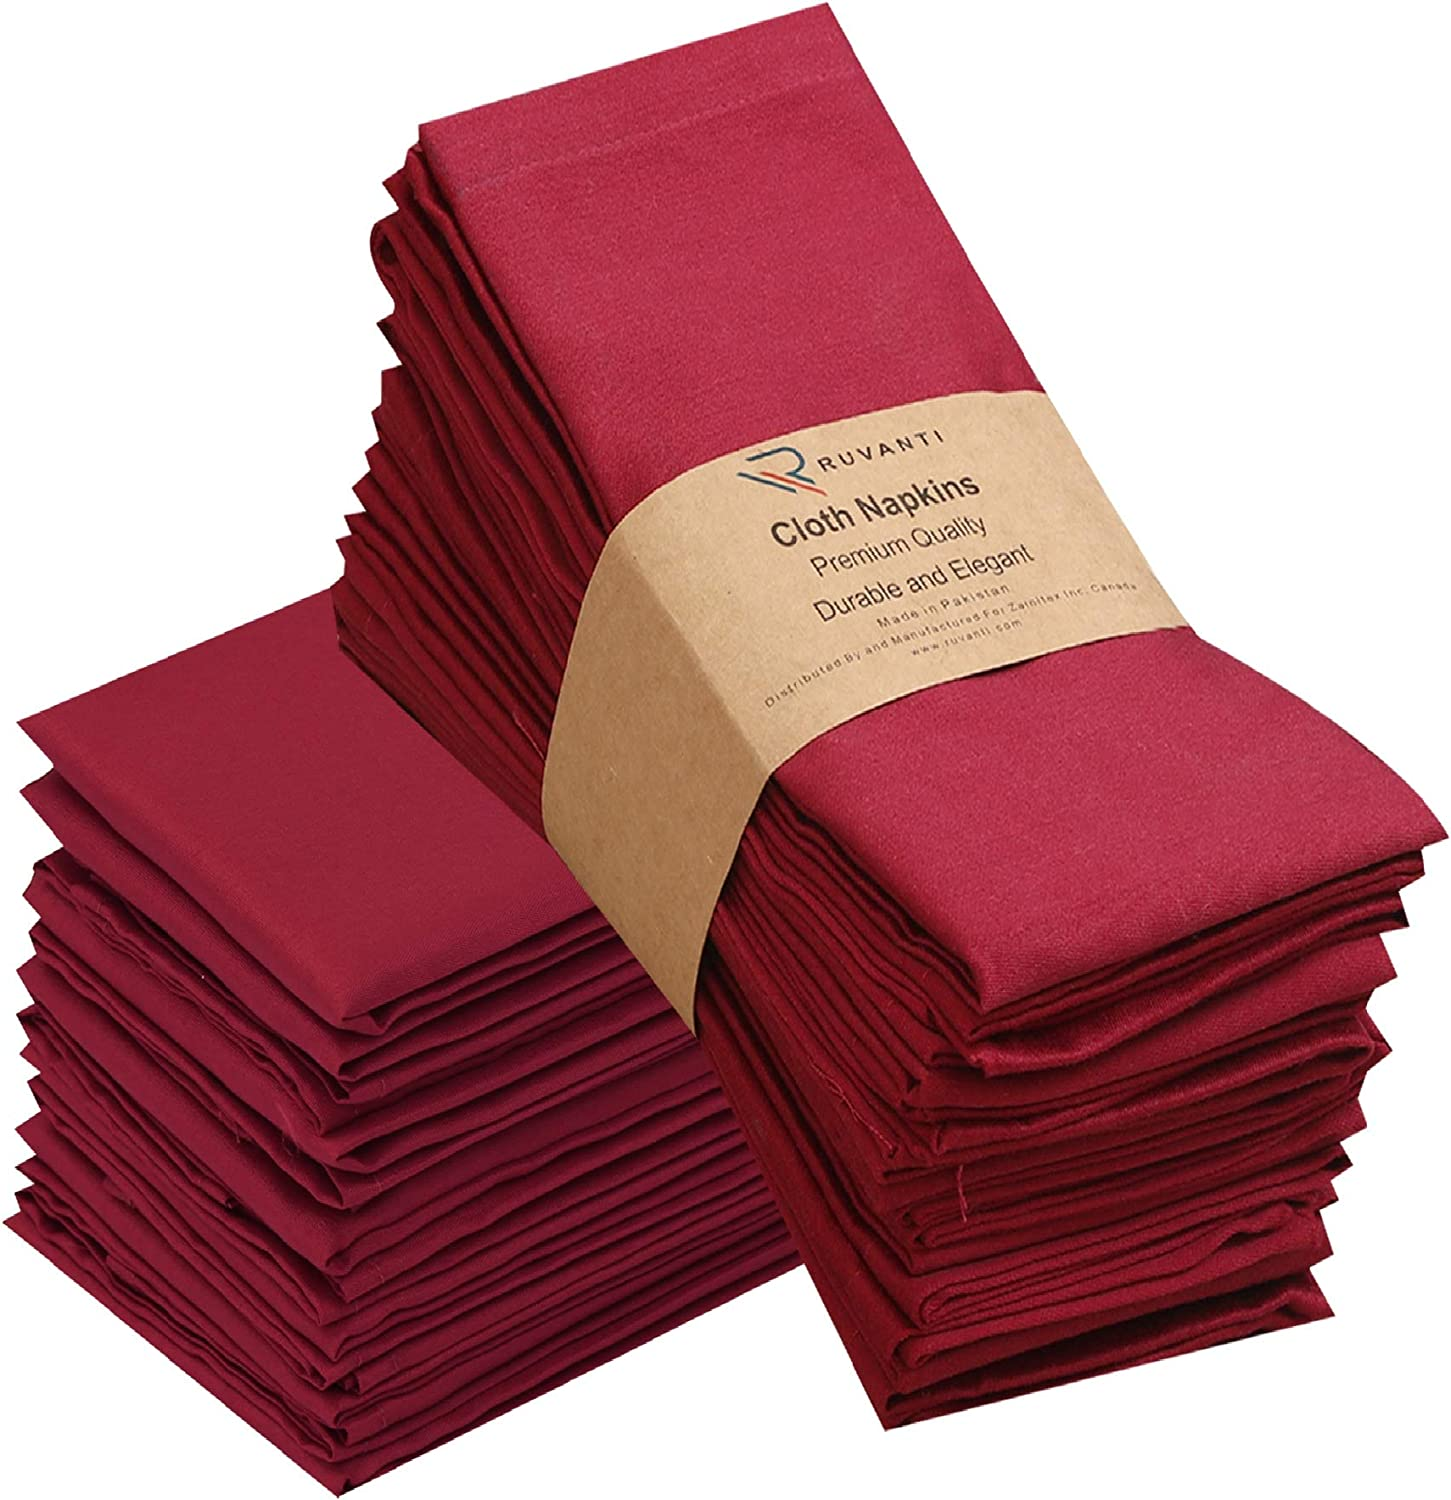 "Ruvanti Kitchen Cloth Napkins 12 Pack (18""X18"") Dinner Napkins Soft and Comfortable, Reusable Napkins, Durable Linen Napkins, Perfect Table Napkins/Burgundy Napkins for Family Dinners, Weddings: Home & Kitchen"